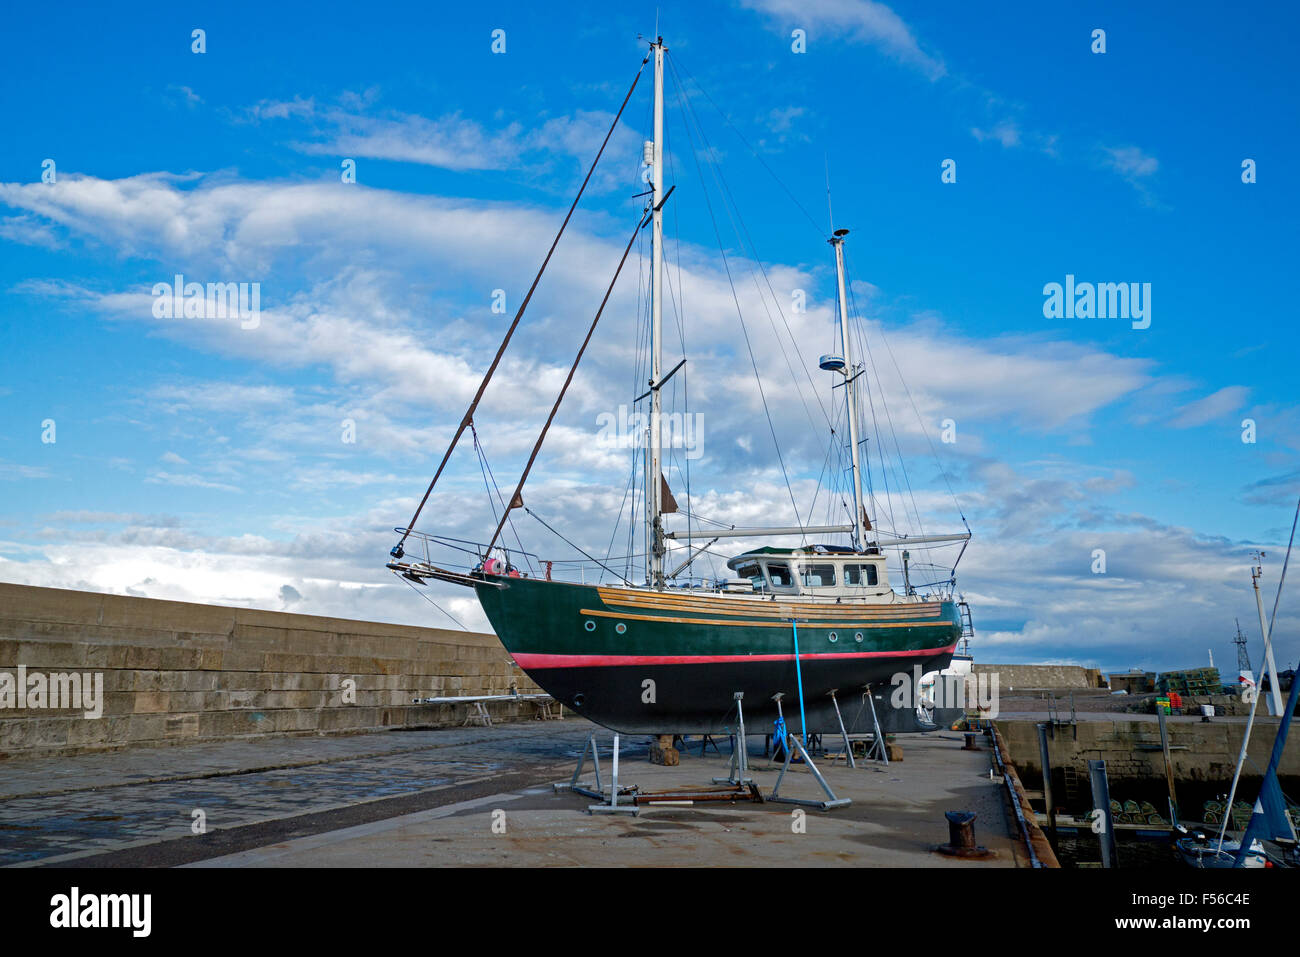 A yacht out of water for repairs on the quay at Lossiemouth Harbour, Moray, Scotland, UK. - Stock Image